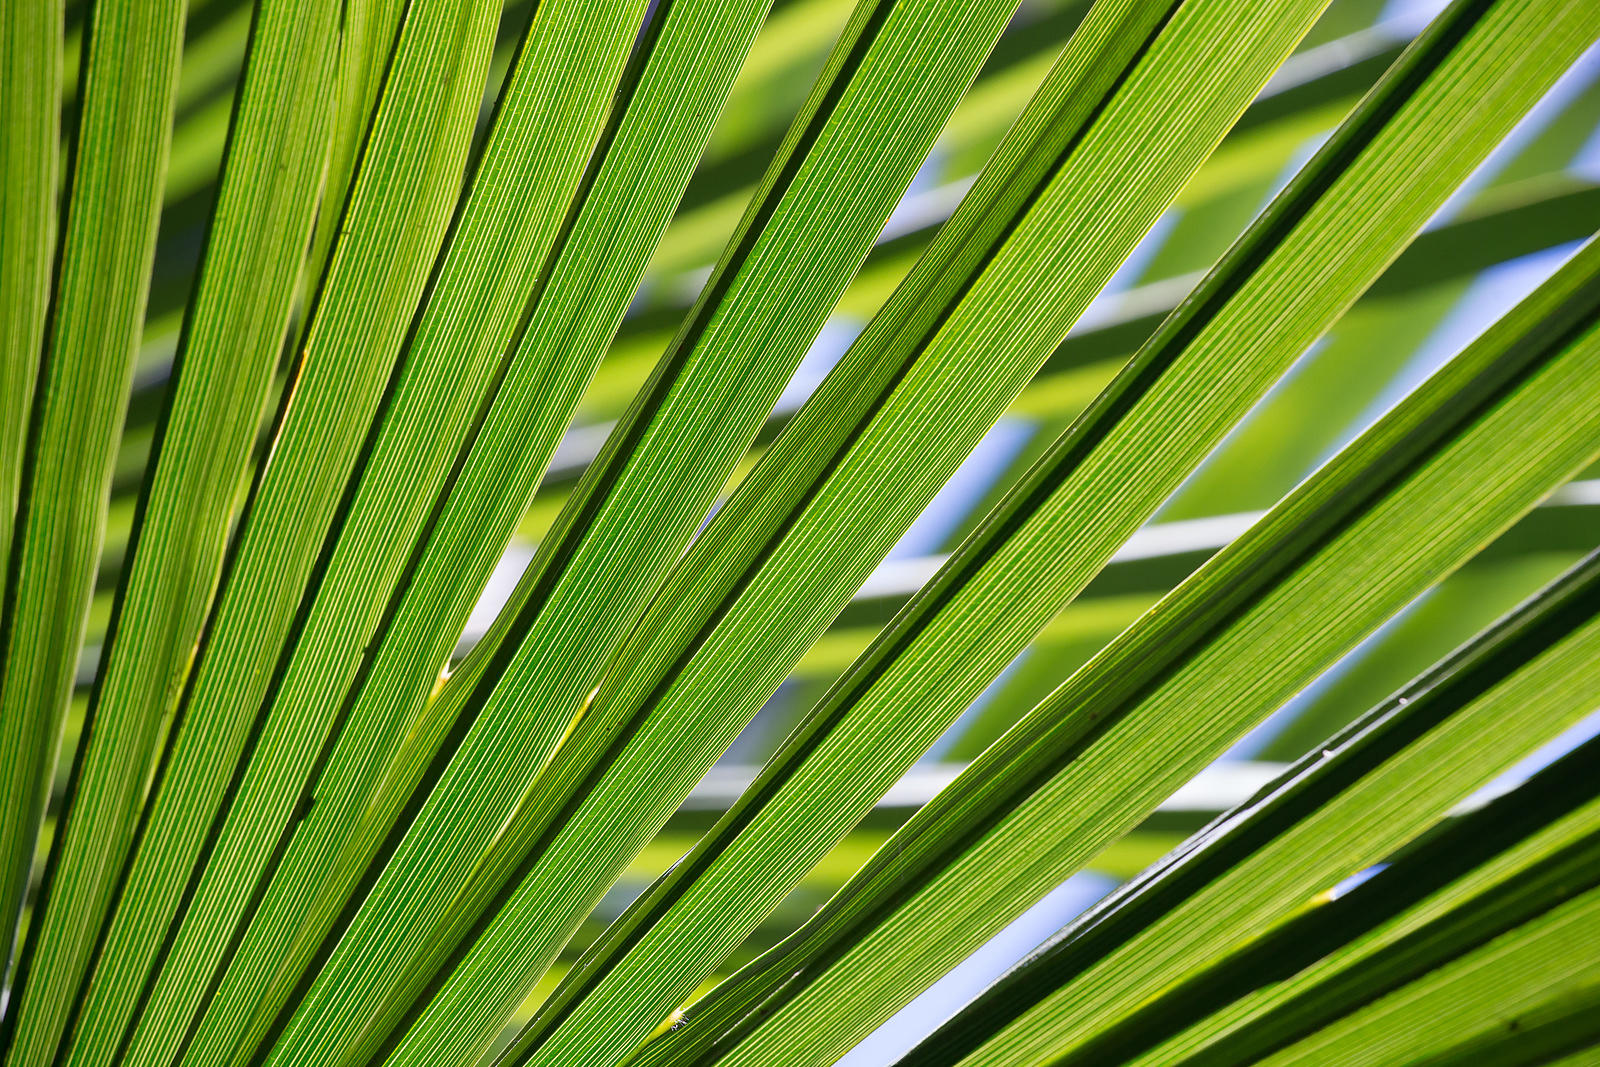 Foliage of Trachycarpus fortunei (Chusan palm)